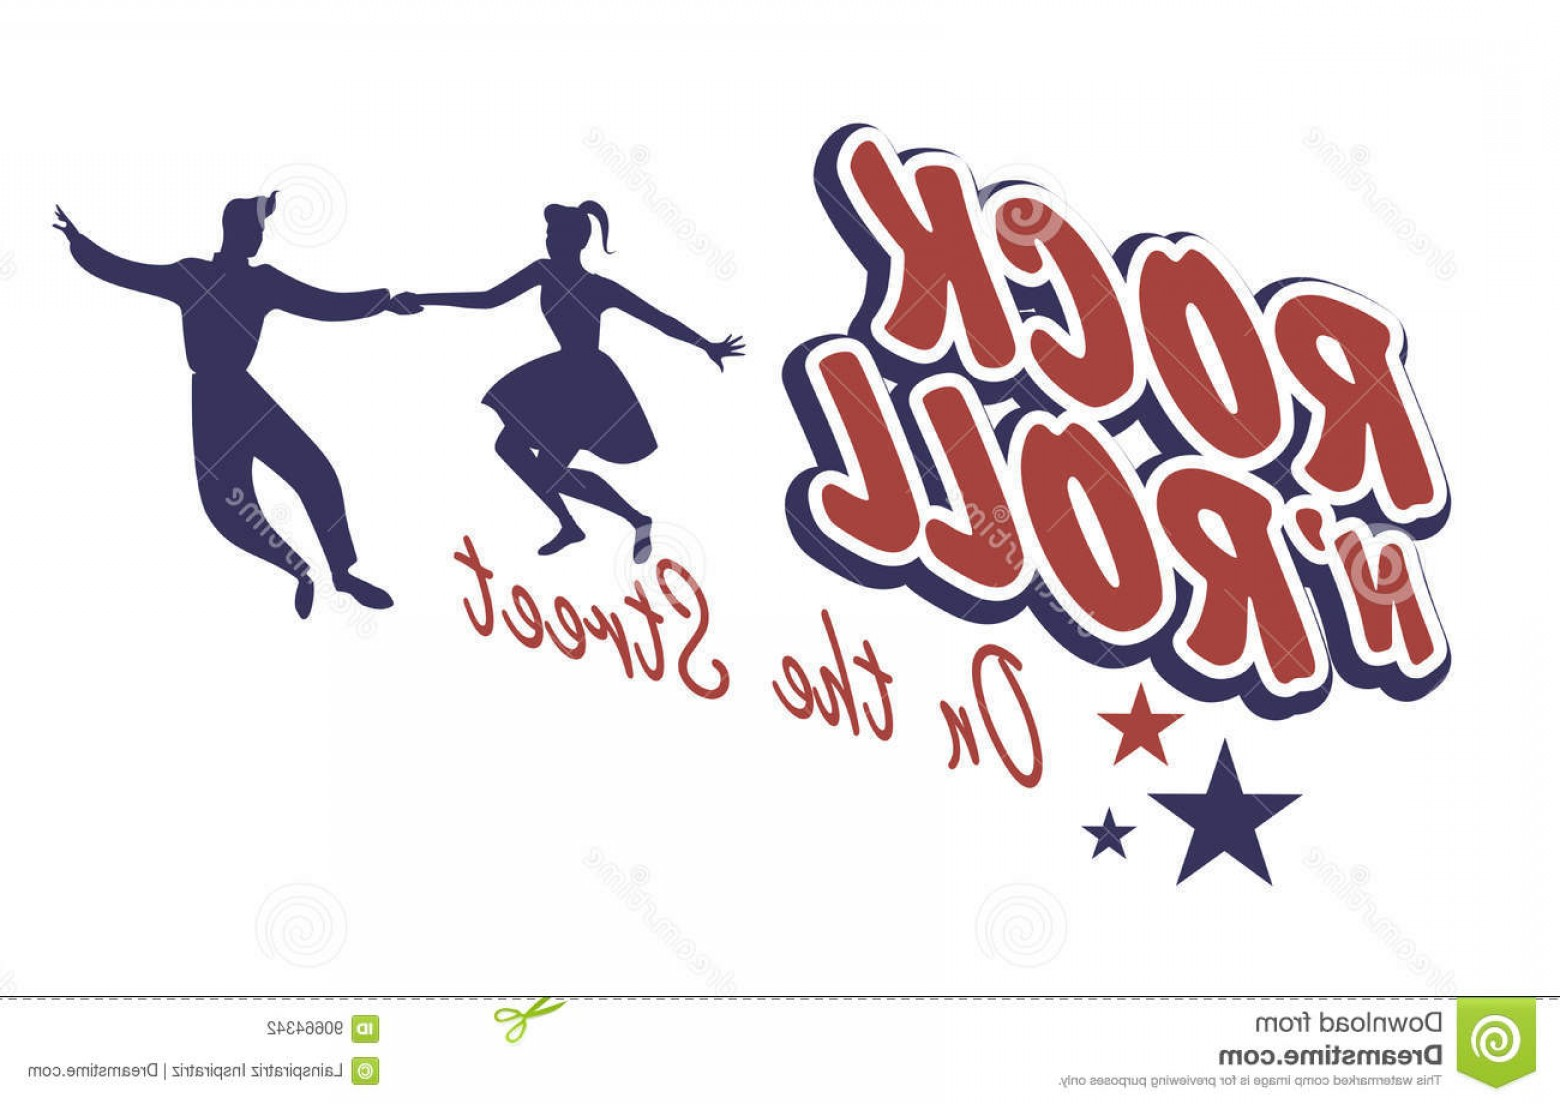 Vector S 50 Pics: Stock Illustration Young Couple Wearing S Clothes Dancing Rock Roll Vector Illustration Image